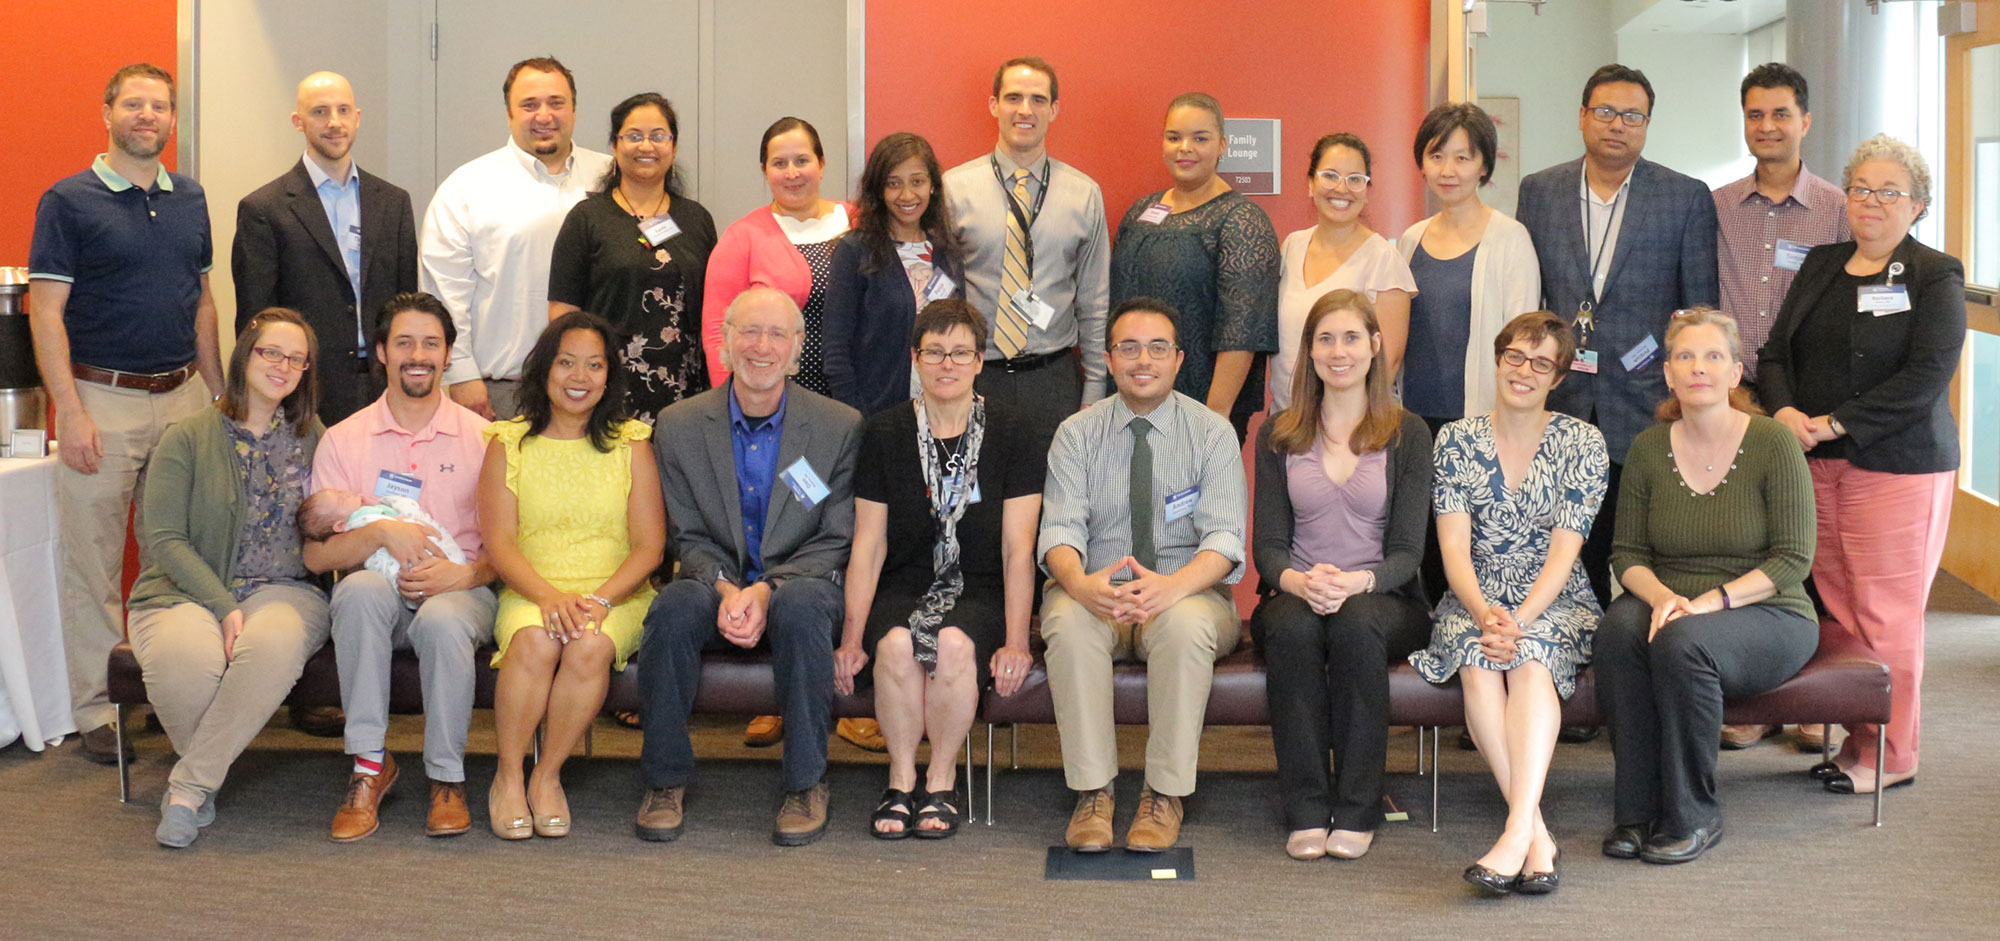 The 2017-2018 participants in Penn State College of Medicine's Junior Faculty Development Program are pictured with program leadership in May 2018. The faculty are pictured sitting and standing in two rows in a large meeting space.